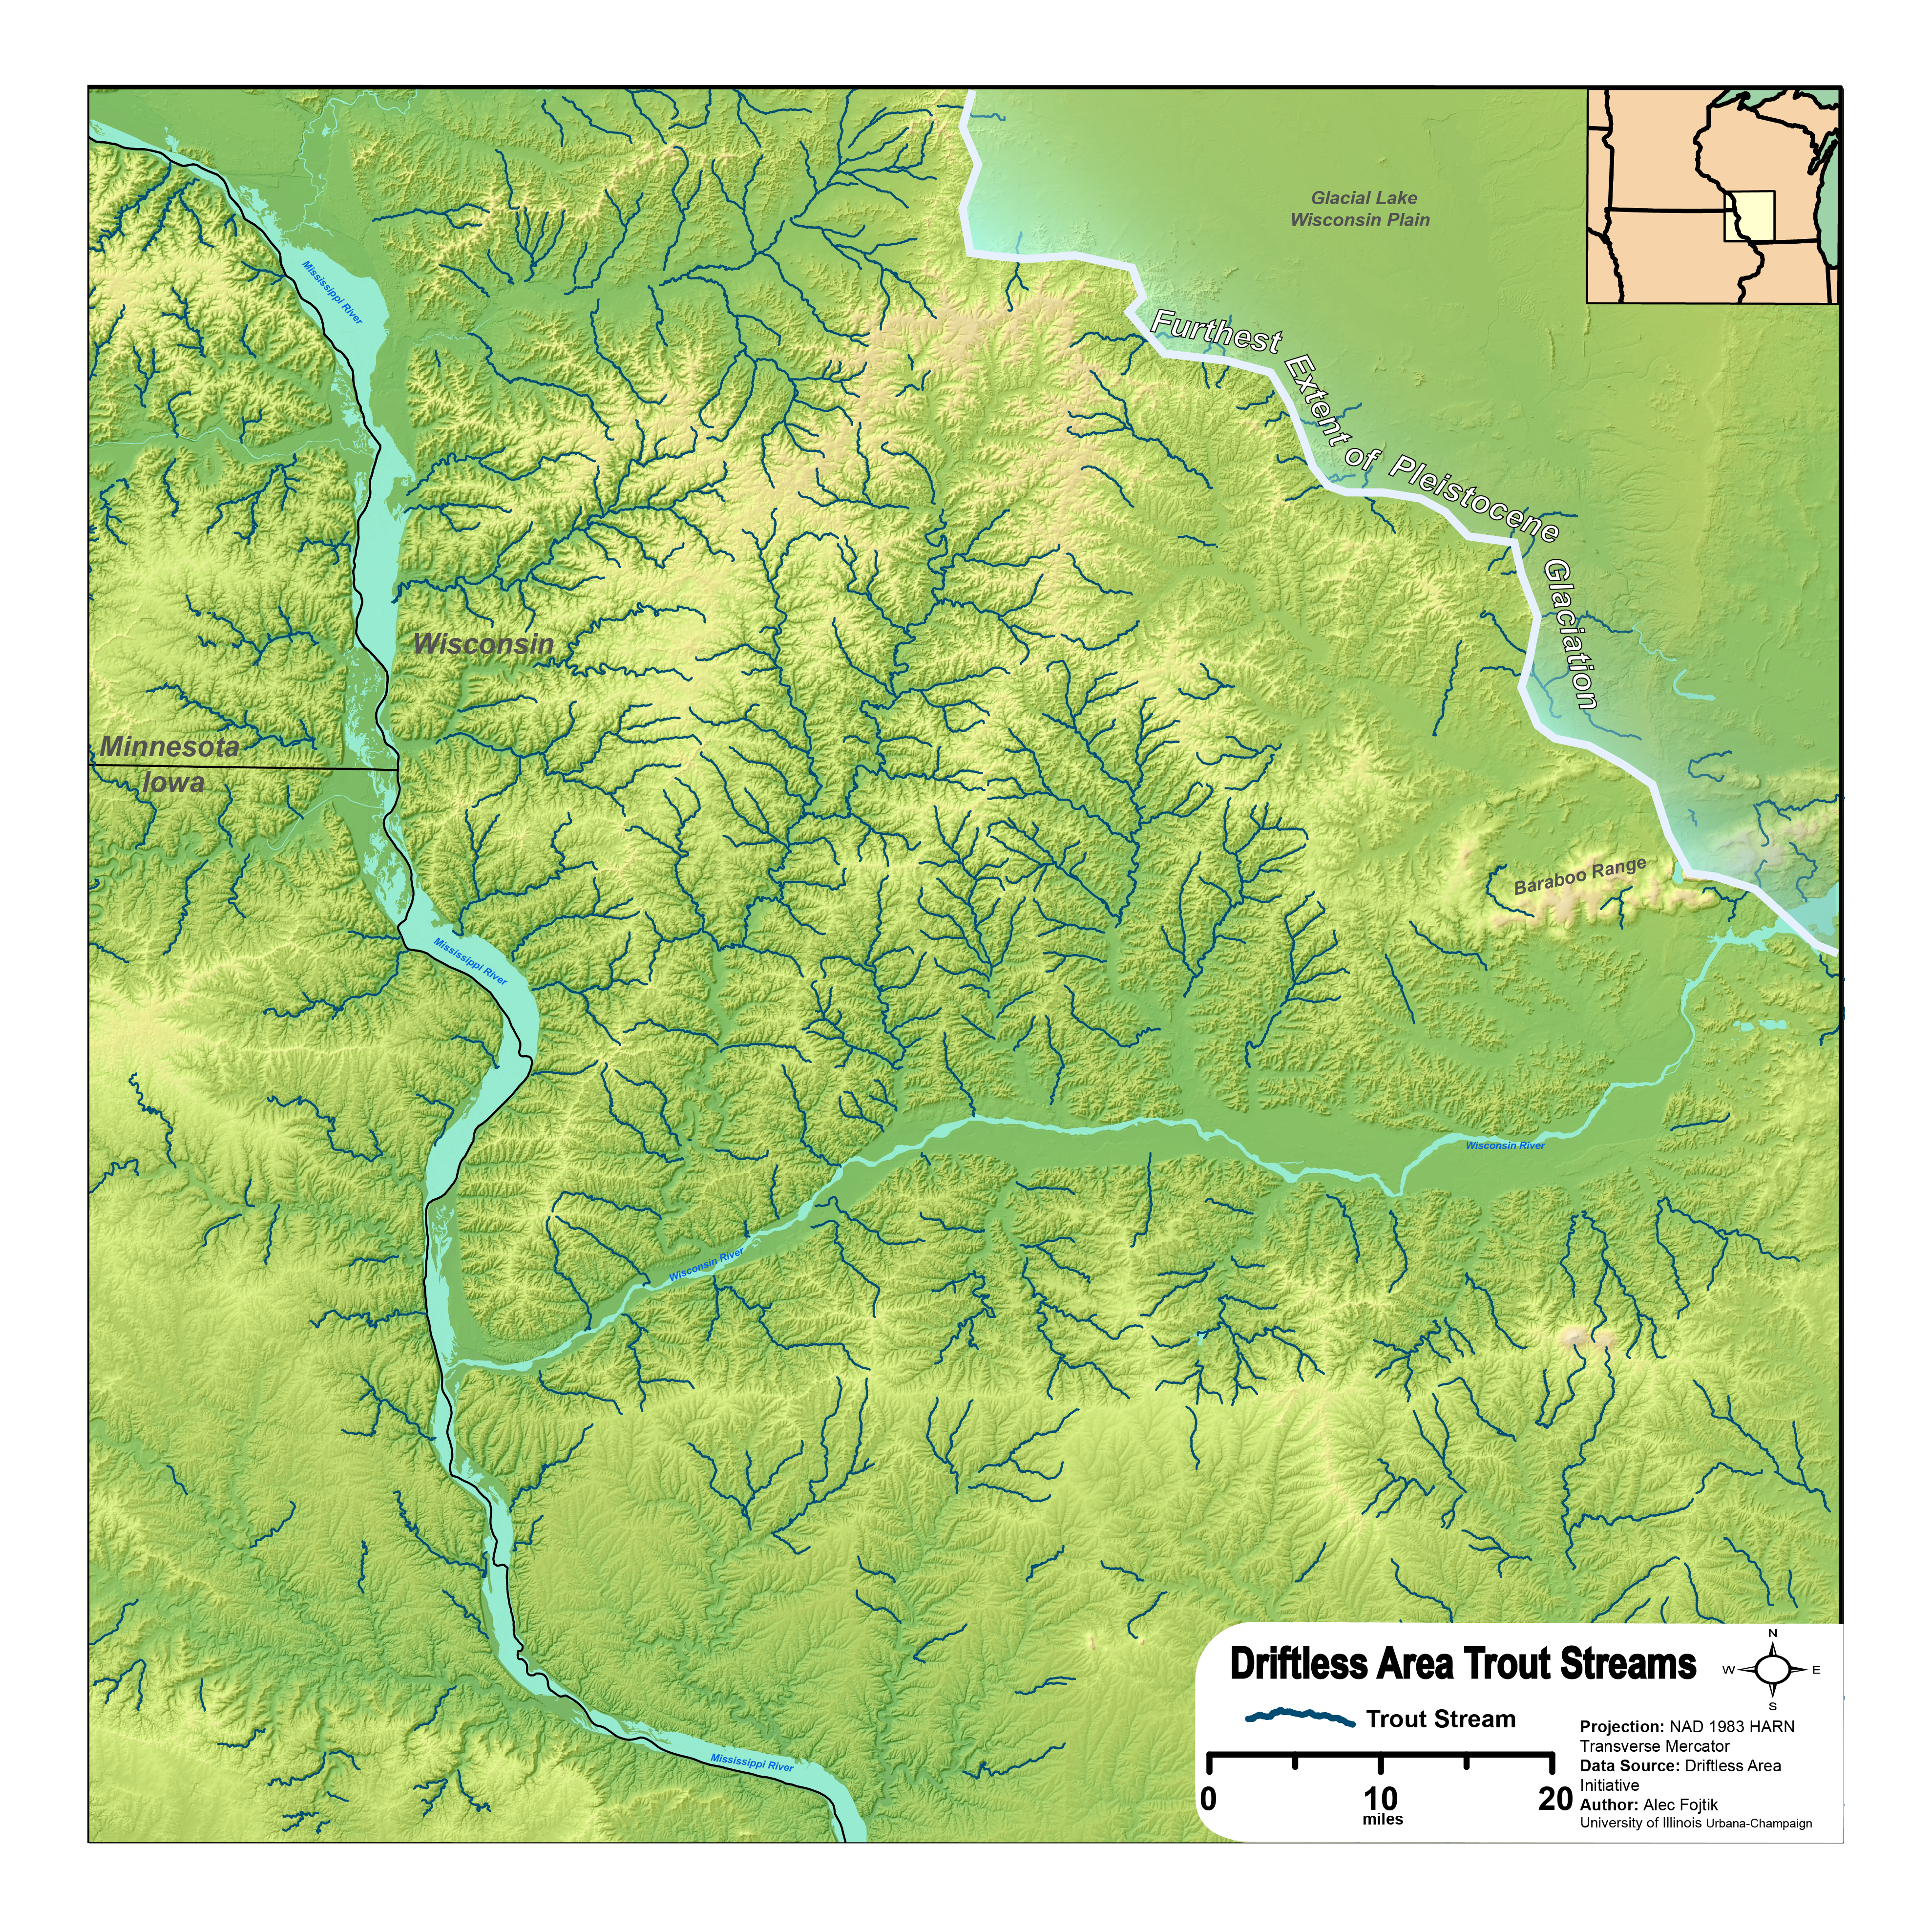 filedriftless trout streamspng wikimedia commons. wisconsin trout streams map professor higbee's® stream  lake